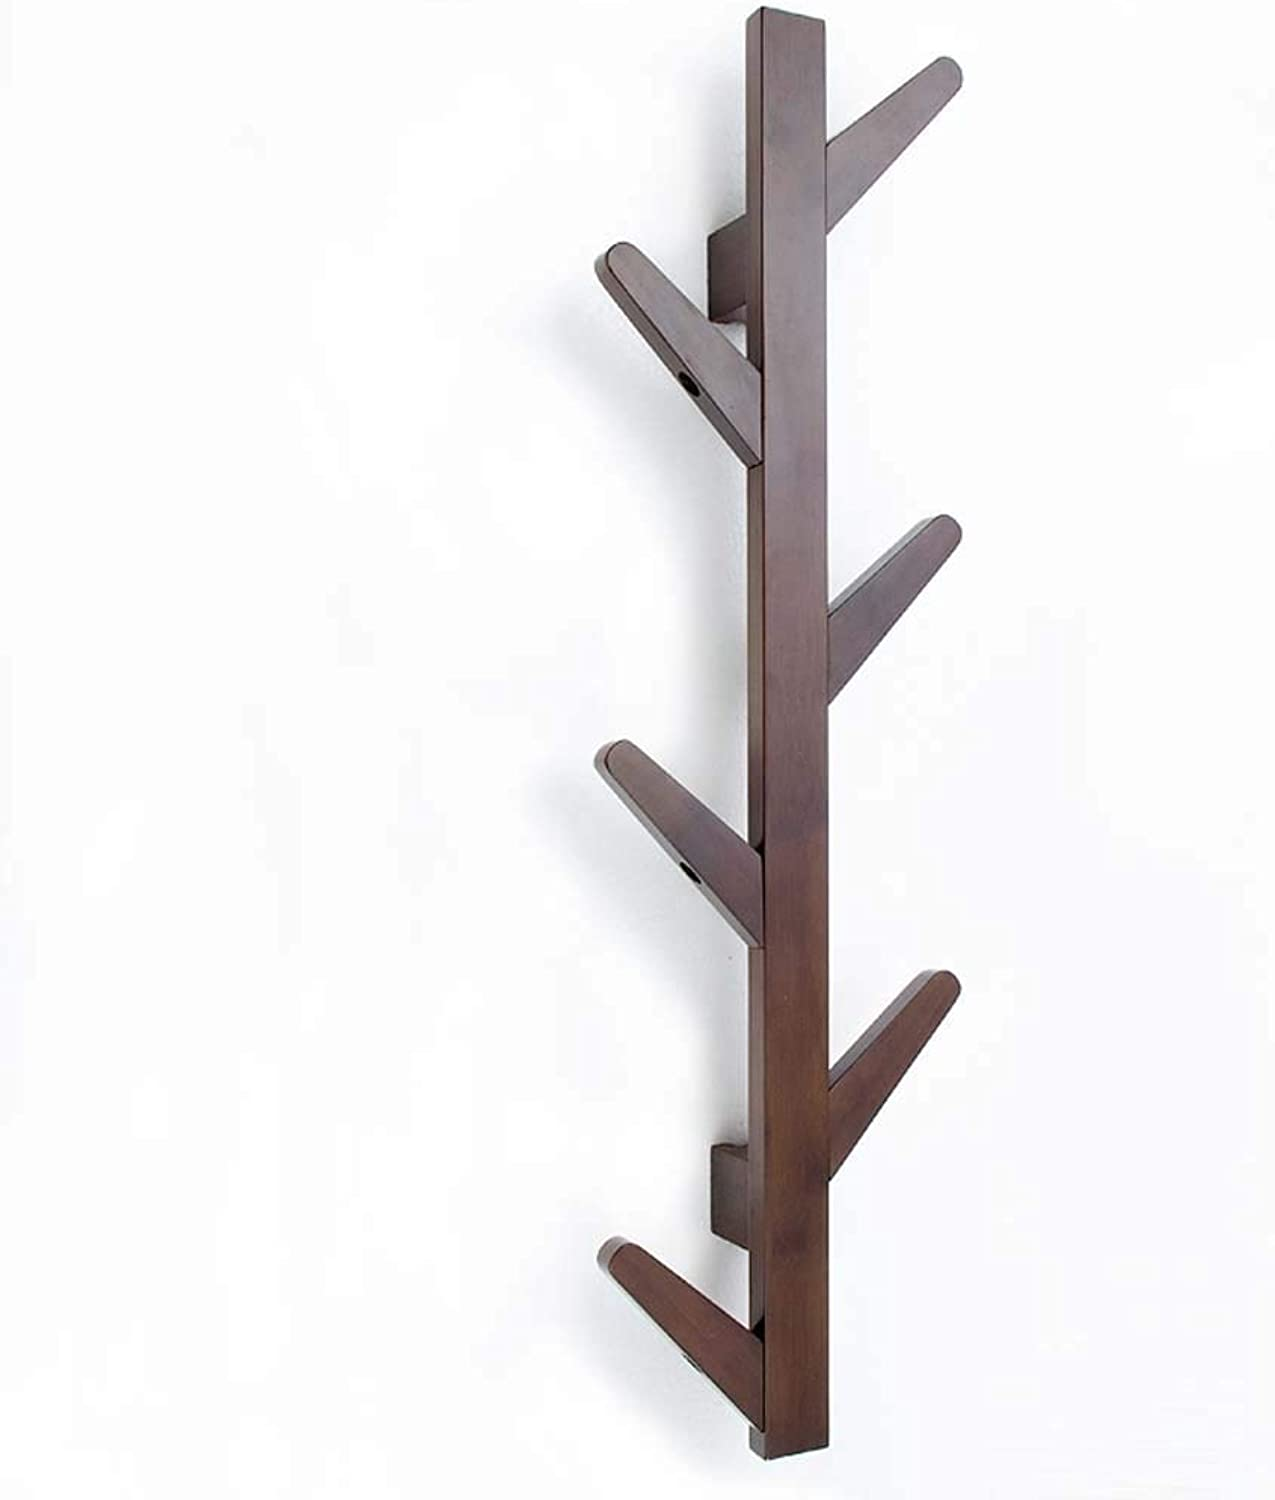 YMJQB Hanging Racks Creative Vintage Coat Rack Stand, Coat Tree, Industrial Style, for Clothes,